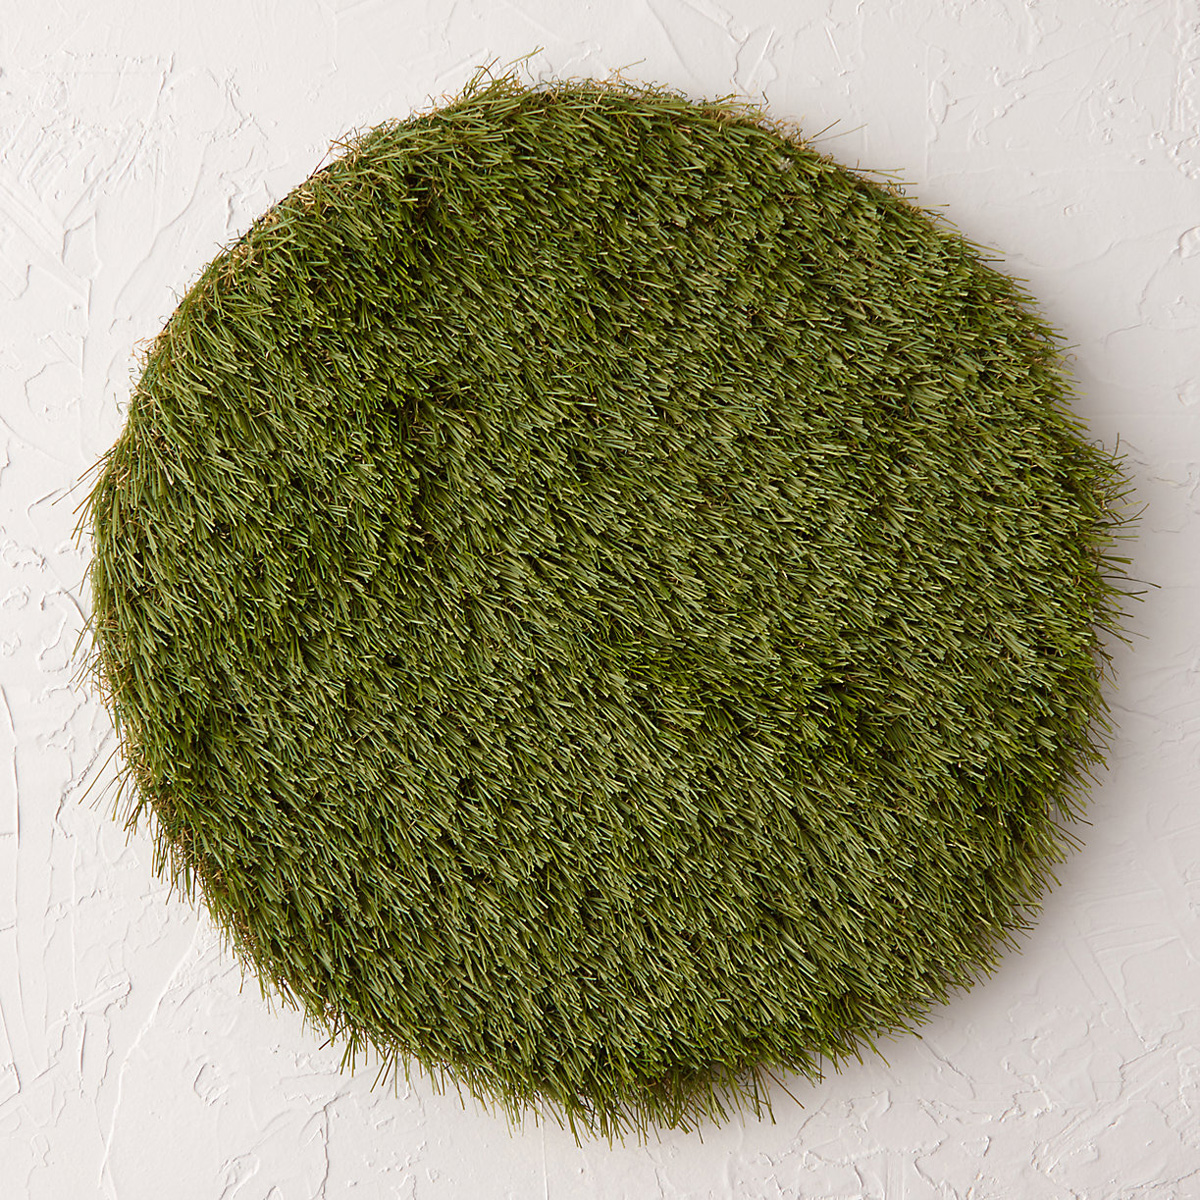 Spring Lawn Grass Placemats The Green Head